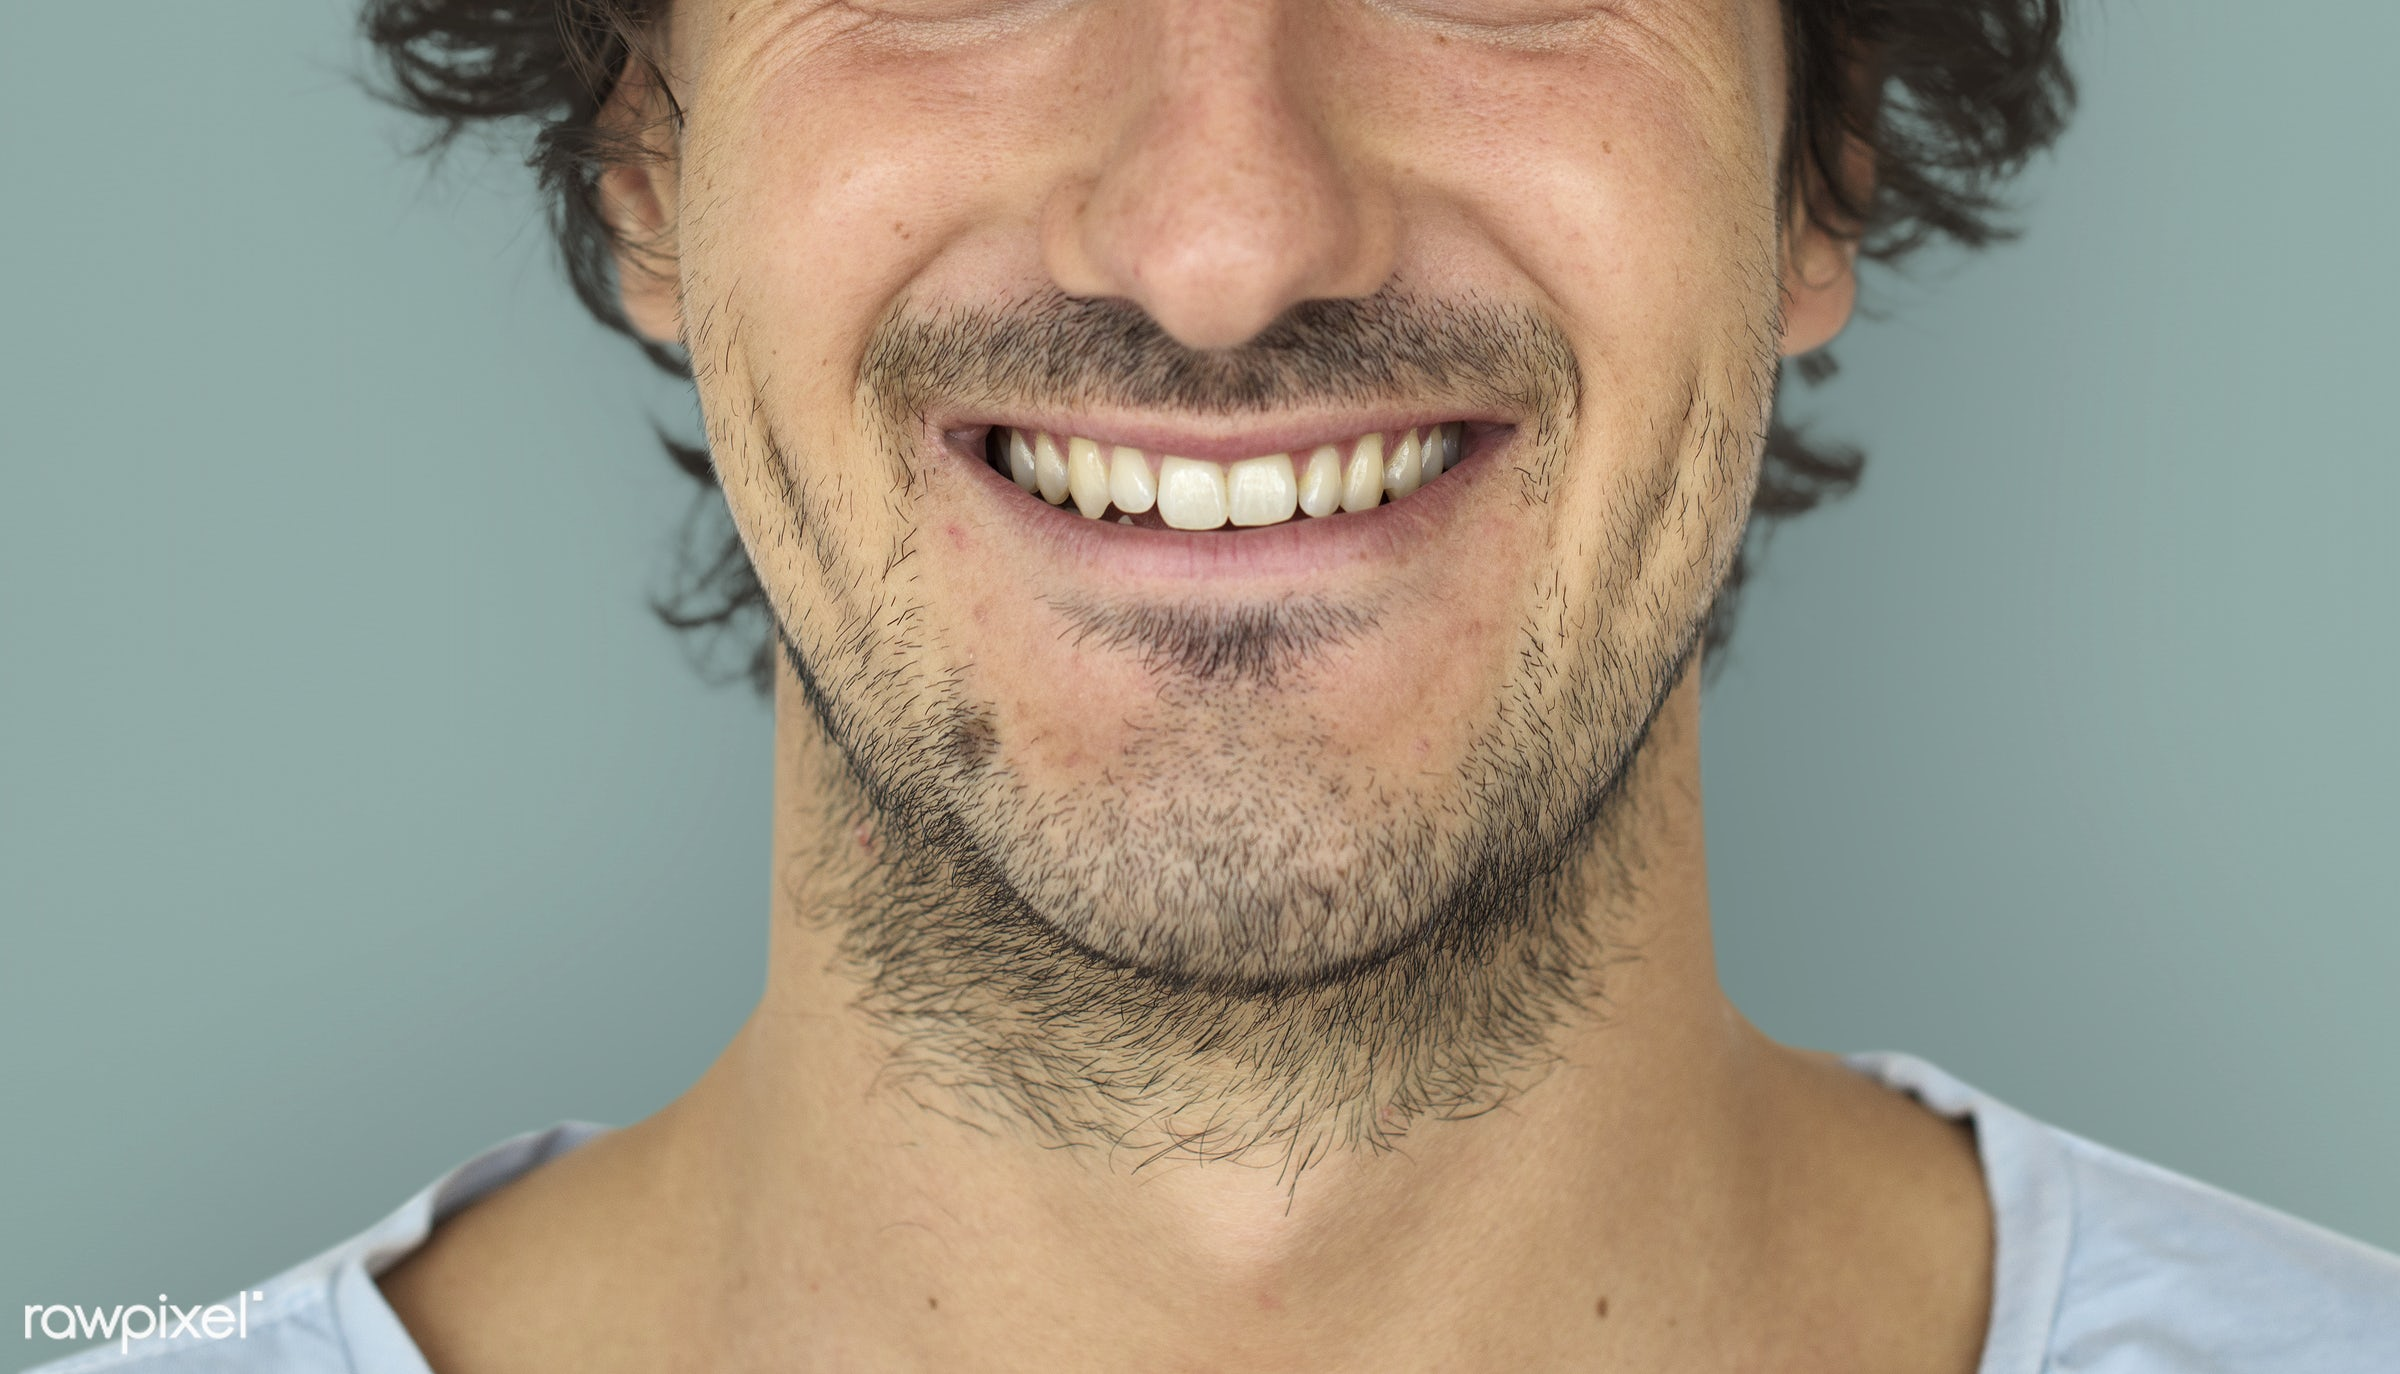 studio, expression, model, person, freedom, relax, optimistic, people, caucasian, laughing, casual, lifestyle, westerner,...